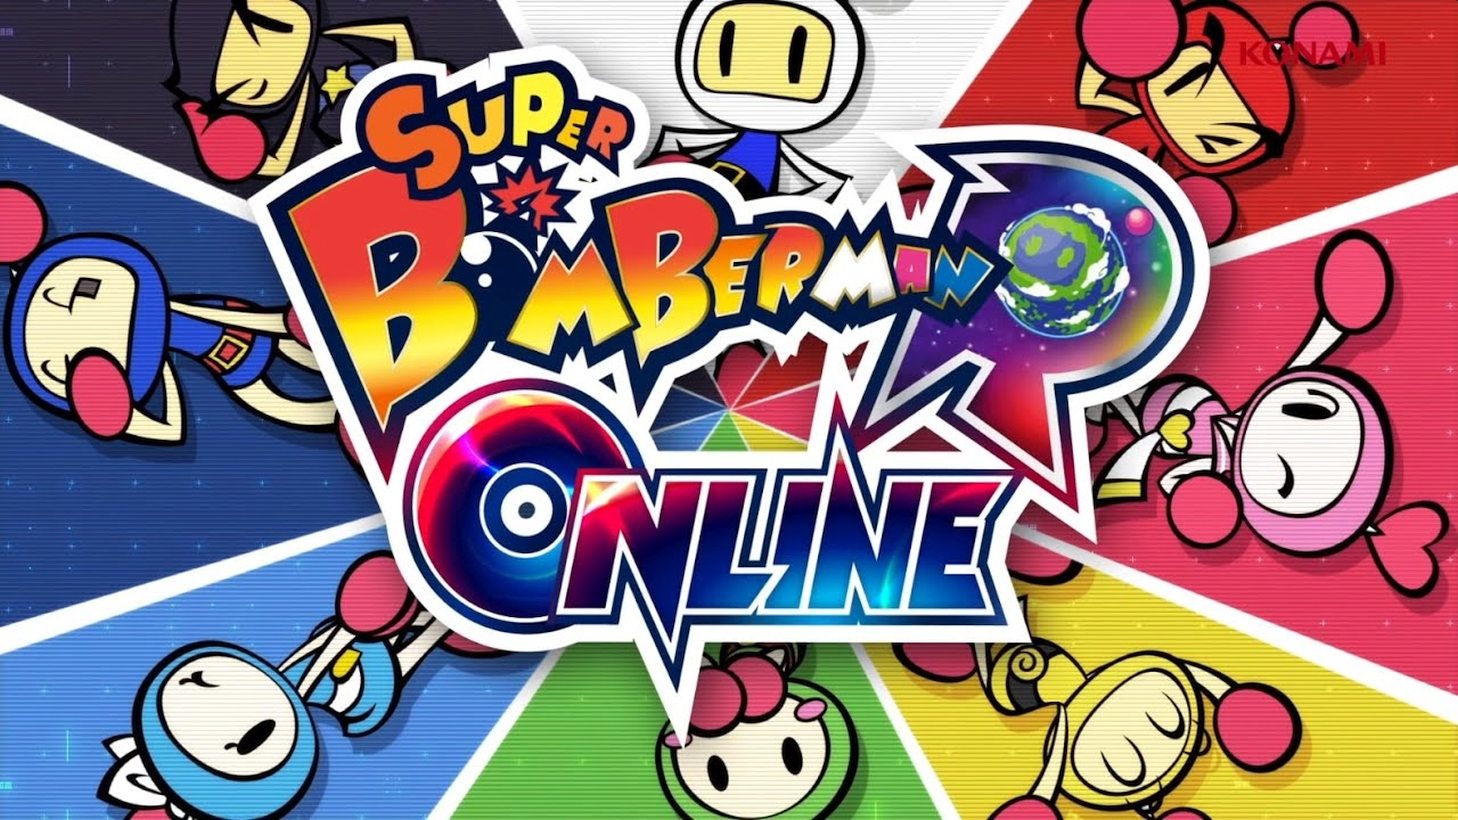 Super Bomberman R Online Launches On Stadia On September 1 And Free For Pro Subscribers